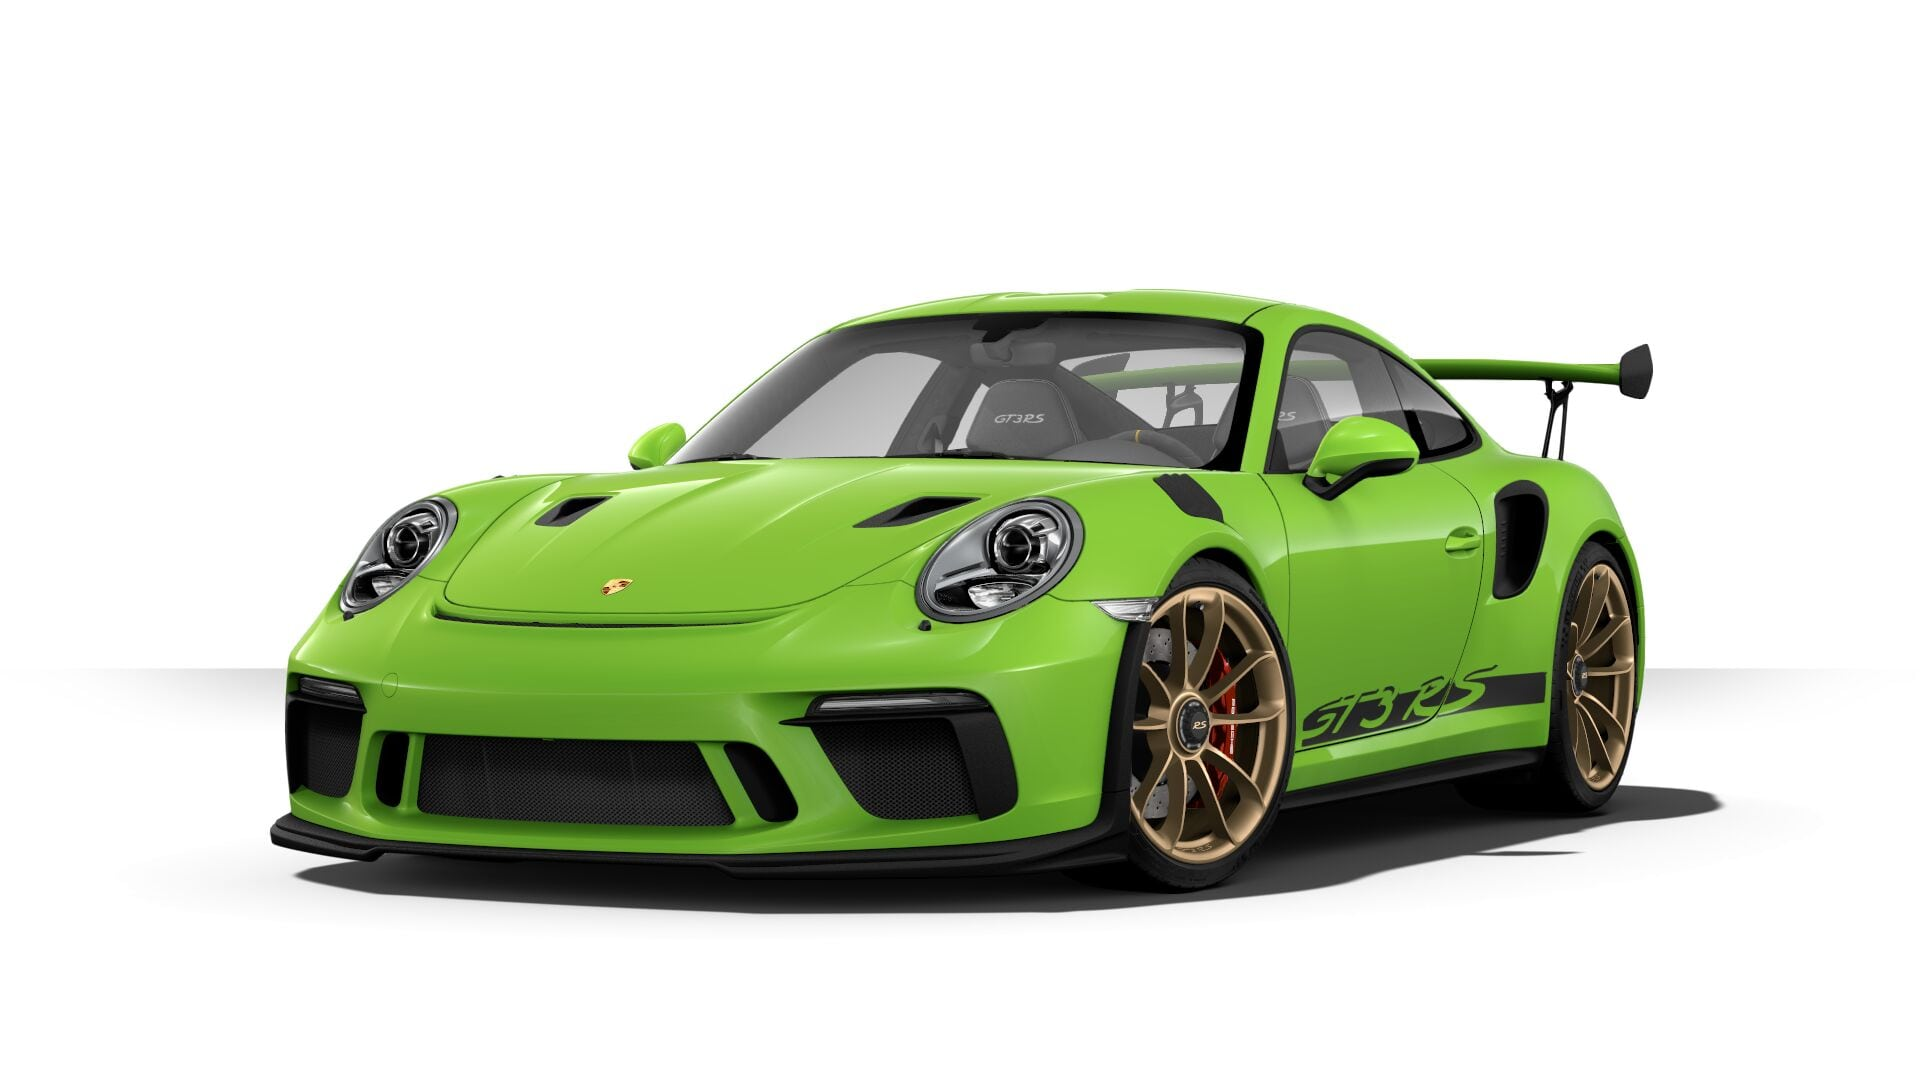 2018 Porsche 911 GT3 RS Price in UAE, Specs & Review in ...